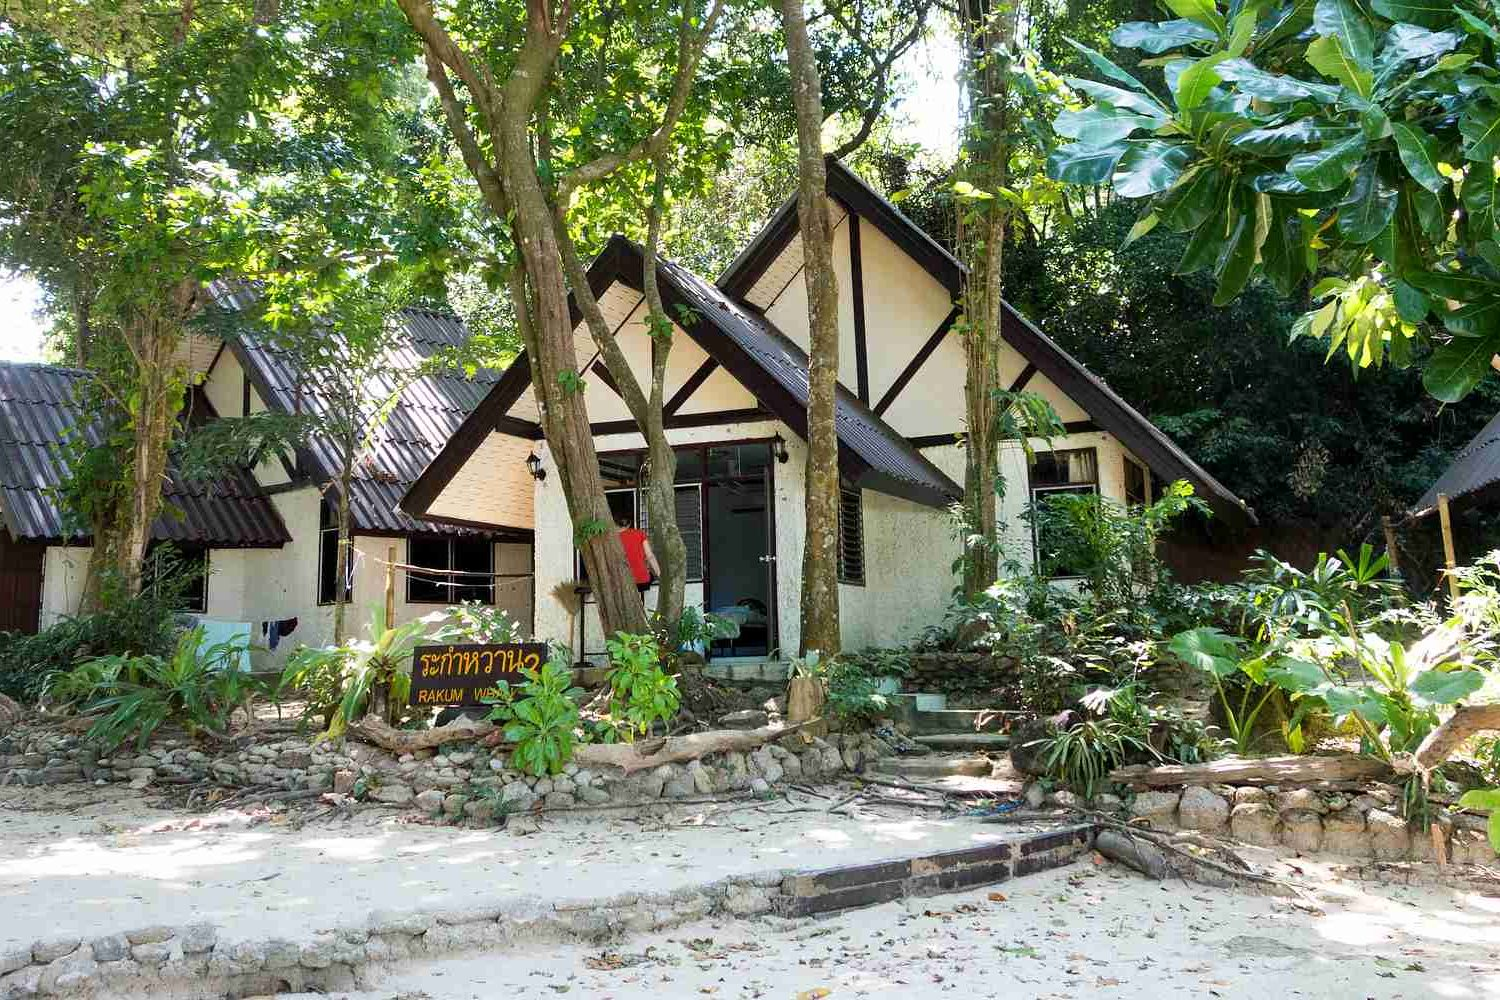 Bungalows under the trees of Ko Surin National Park